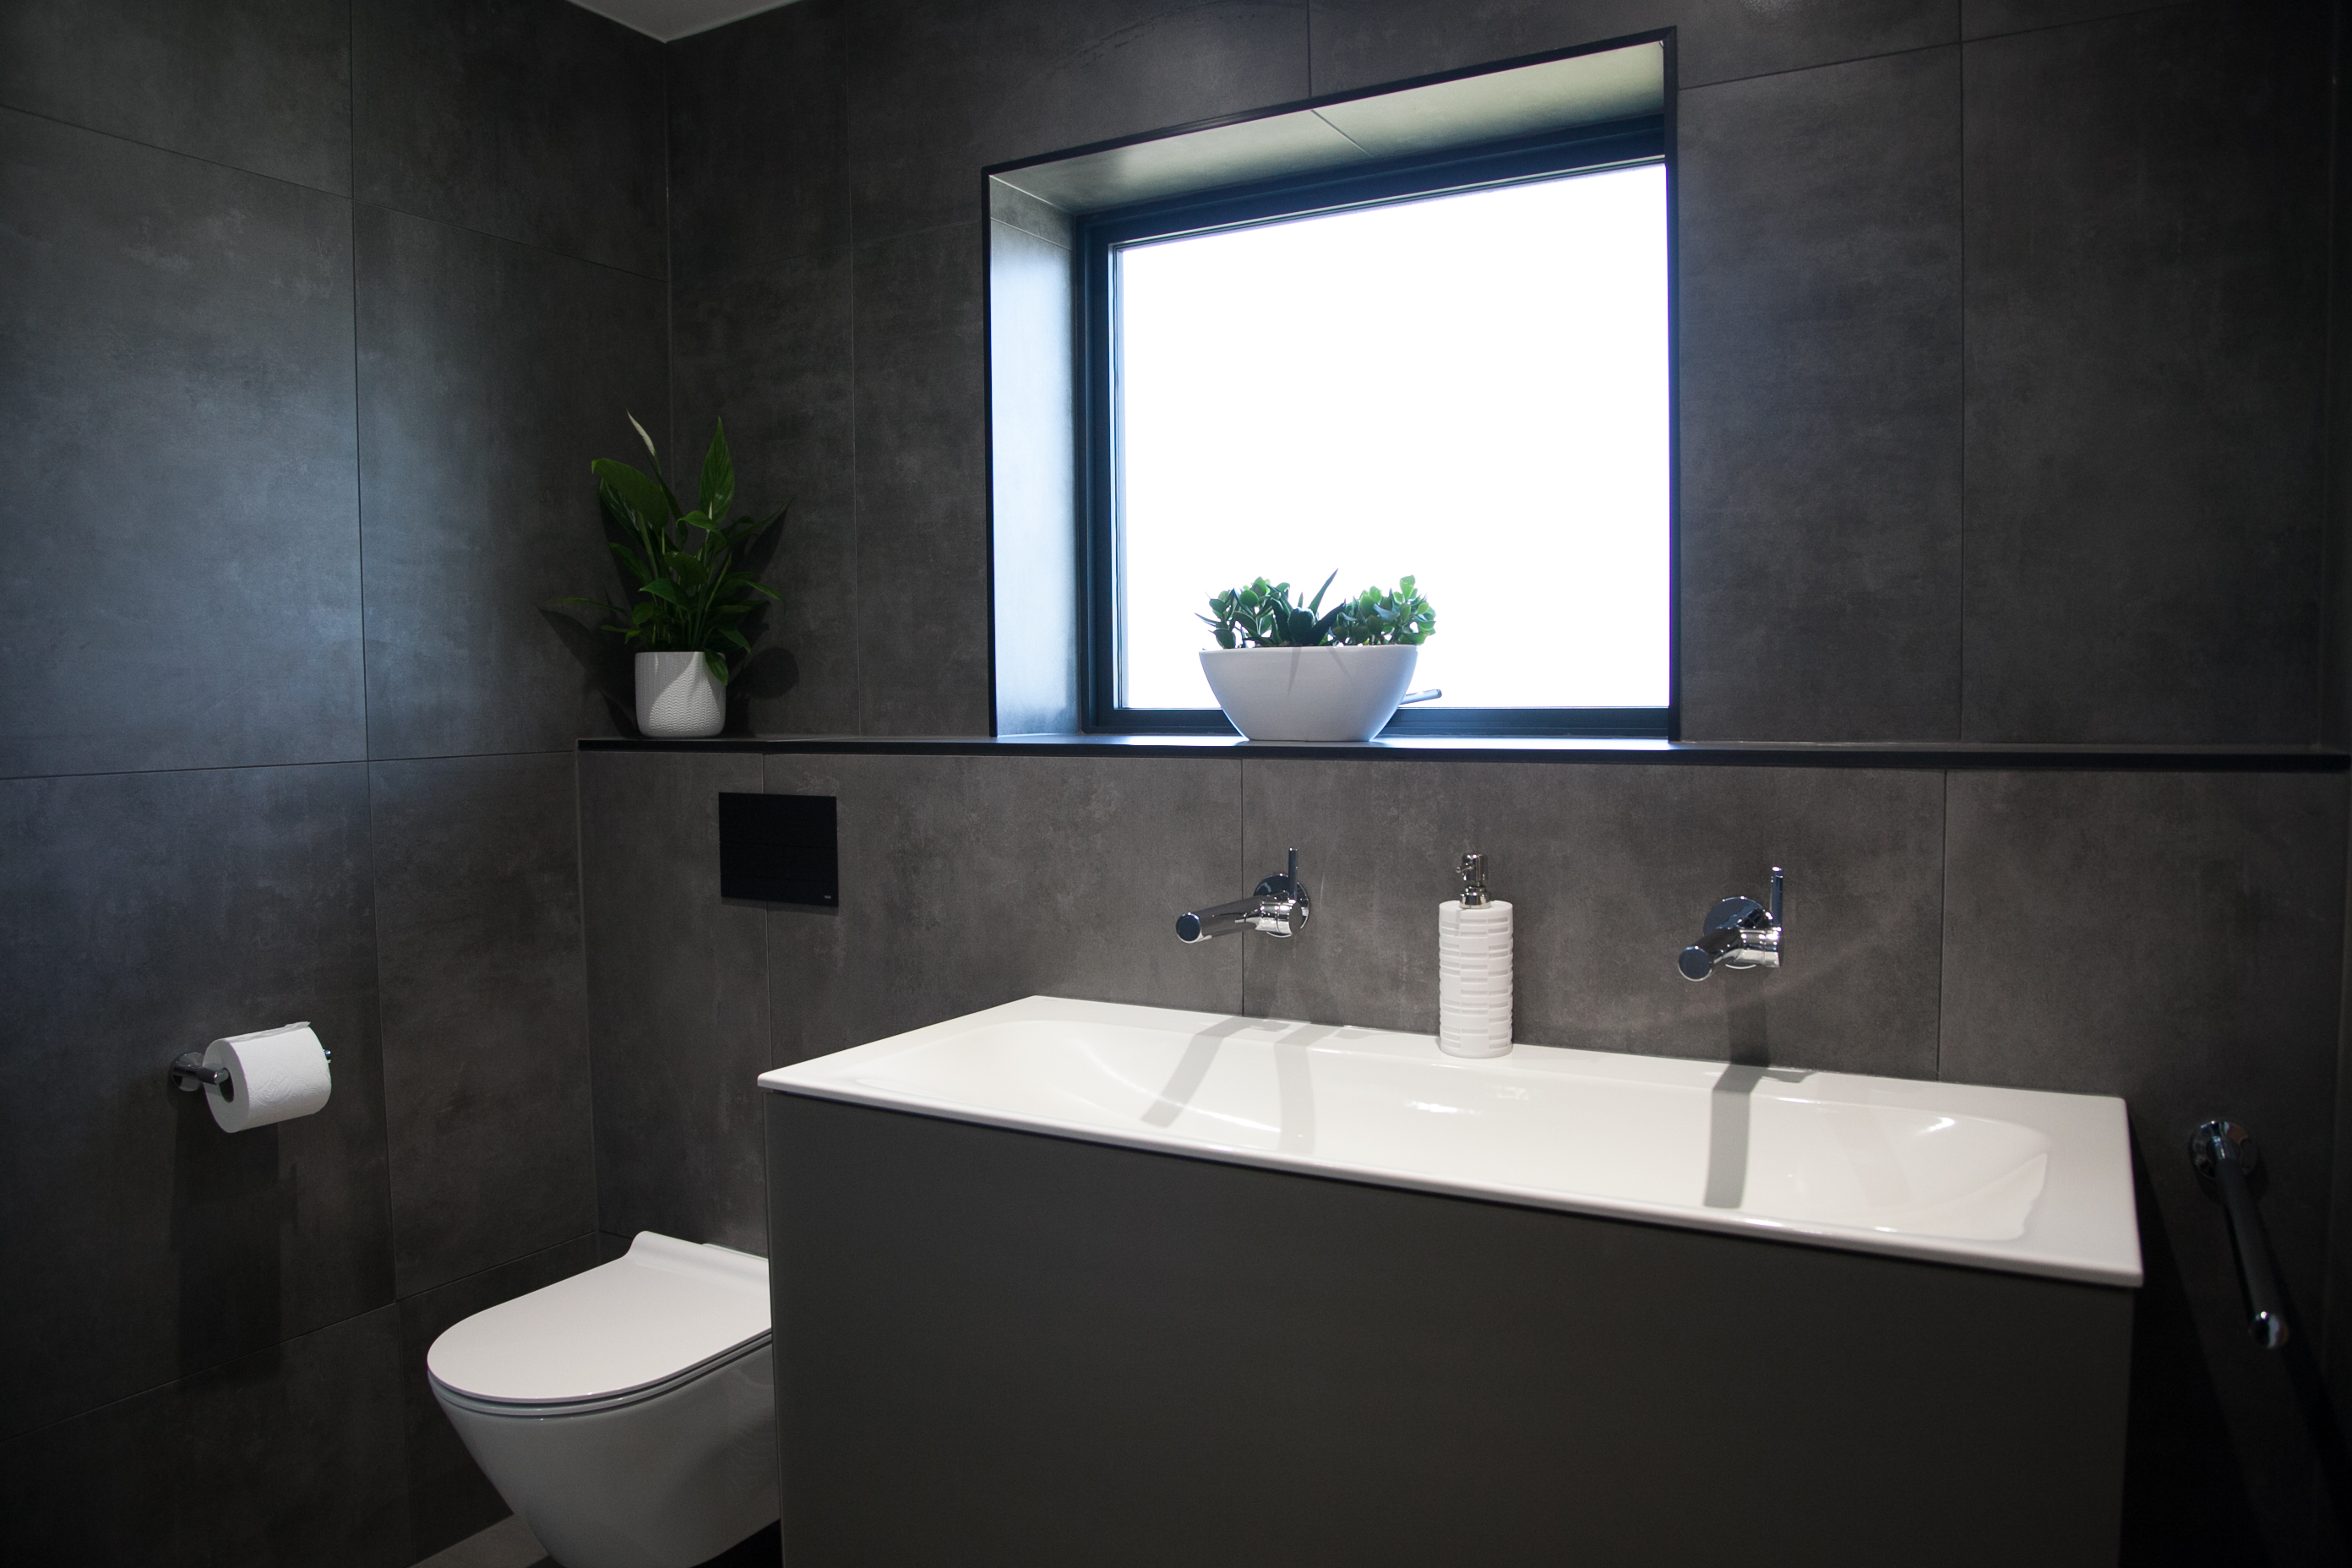 Hatherley Bathroom Project - Bathrooms Cirencester, Voga Interiors